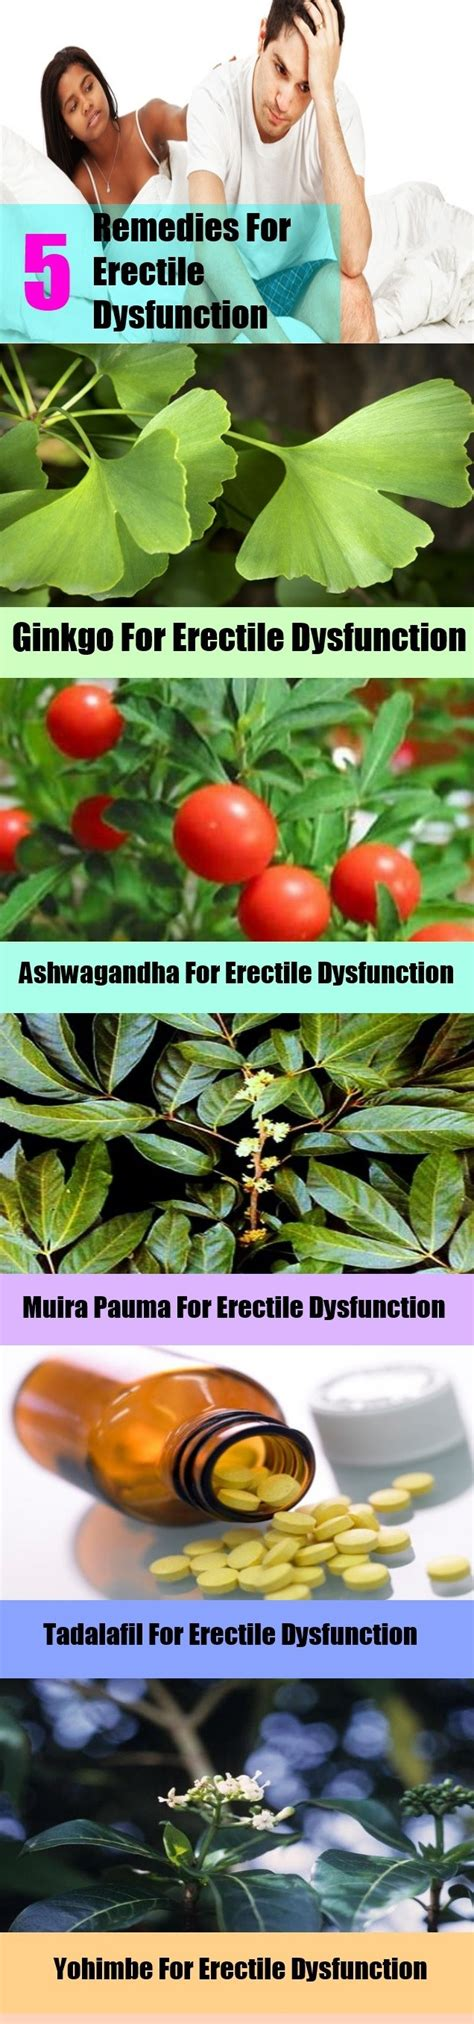 5 remedies for erectile dysfunction home remedies